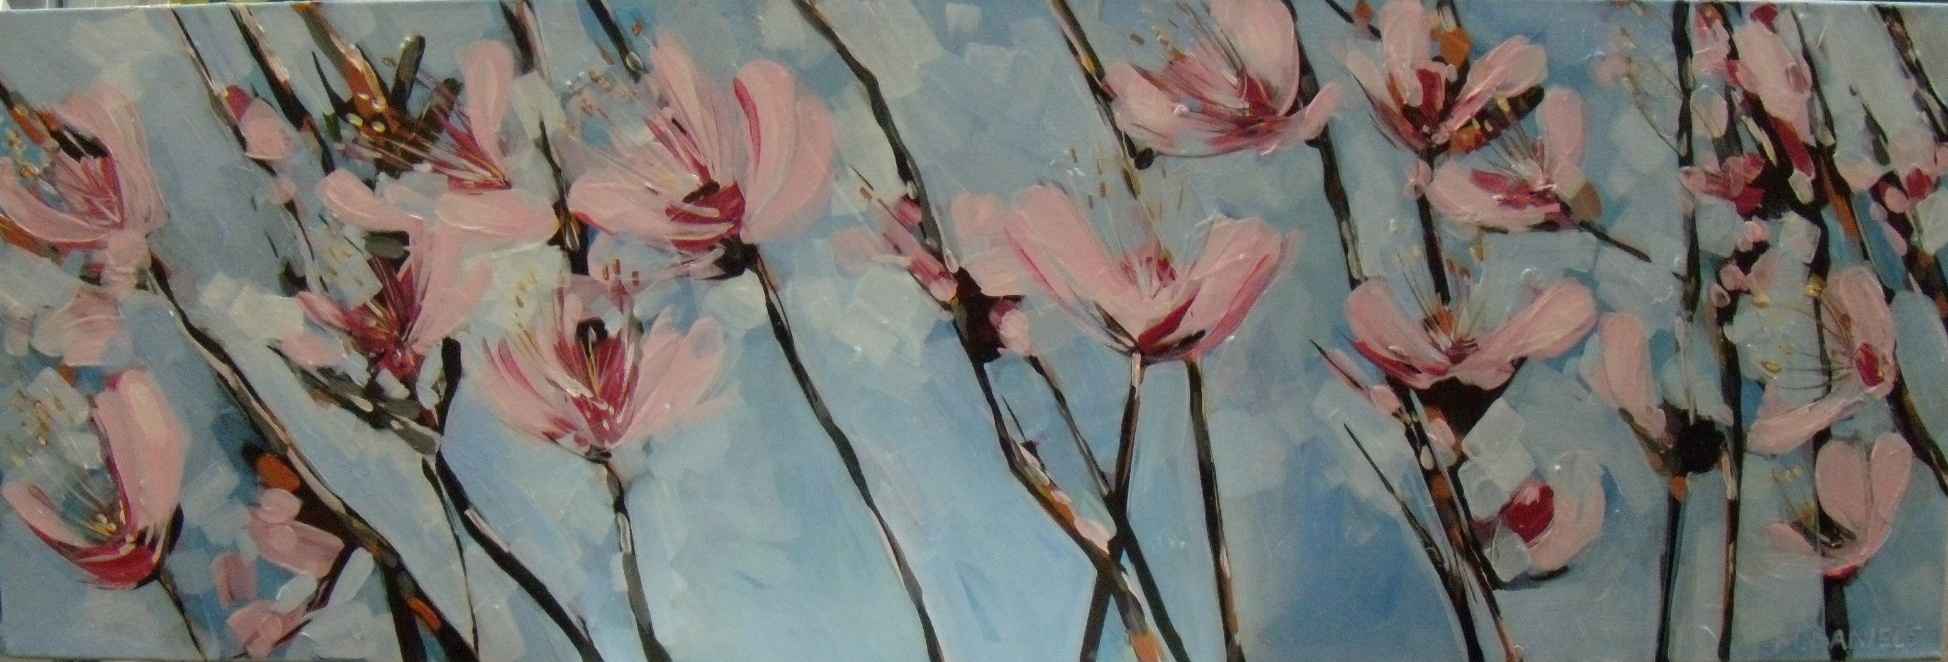 Nectarine Blossoms $950 Measures 920 mm w x 300 mm h